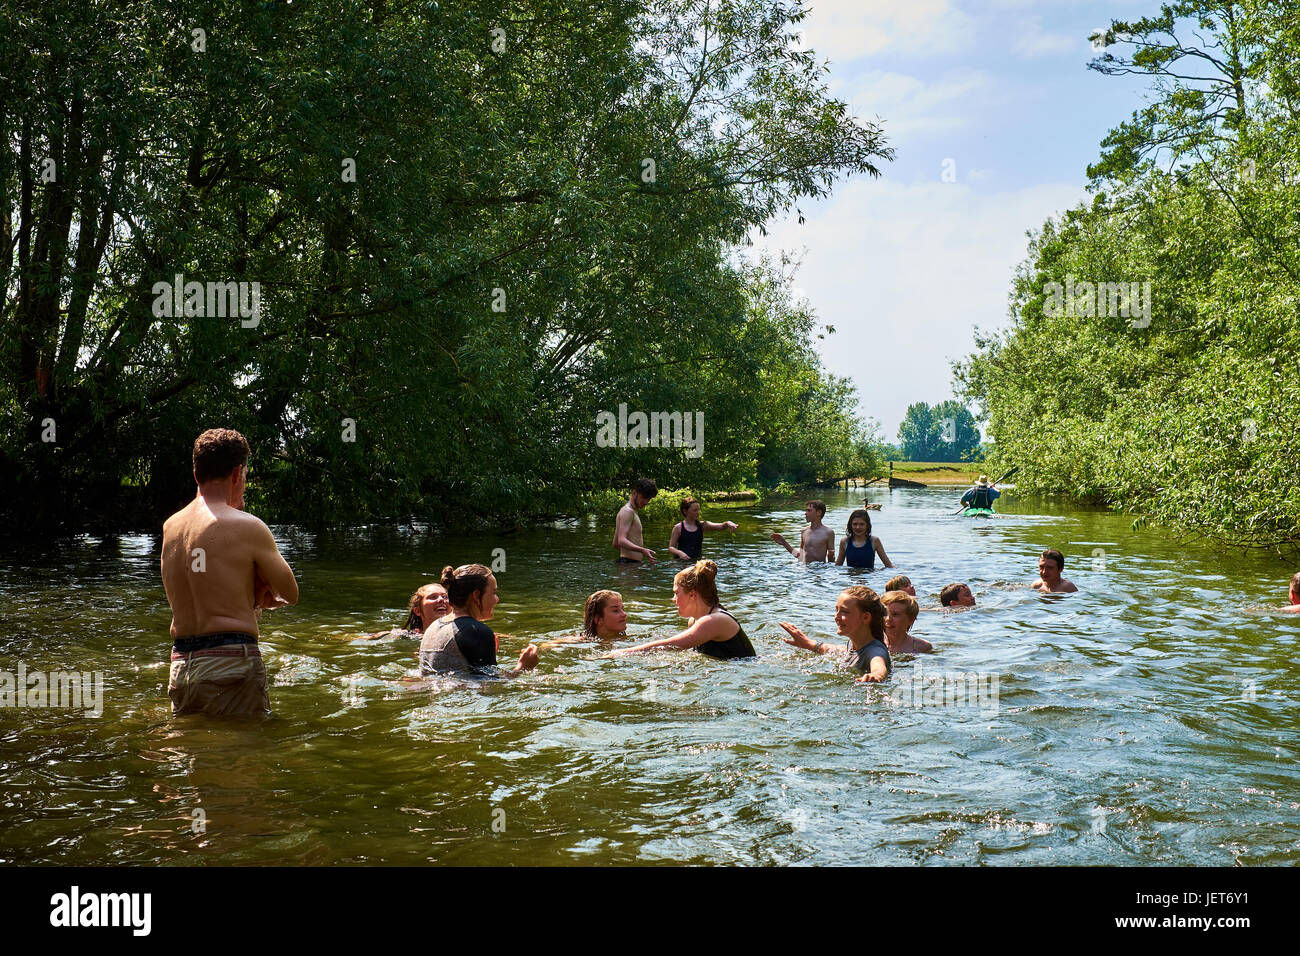 Adults and children play in the river Thames near Oxford on a hot summer day. - Stock Image